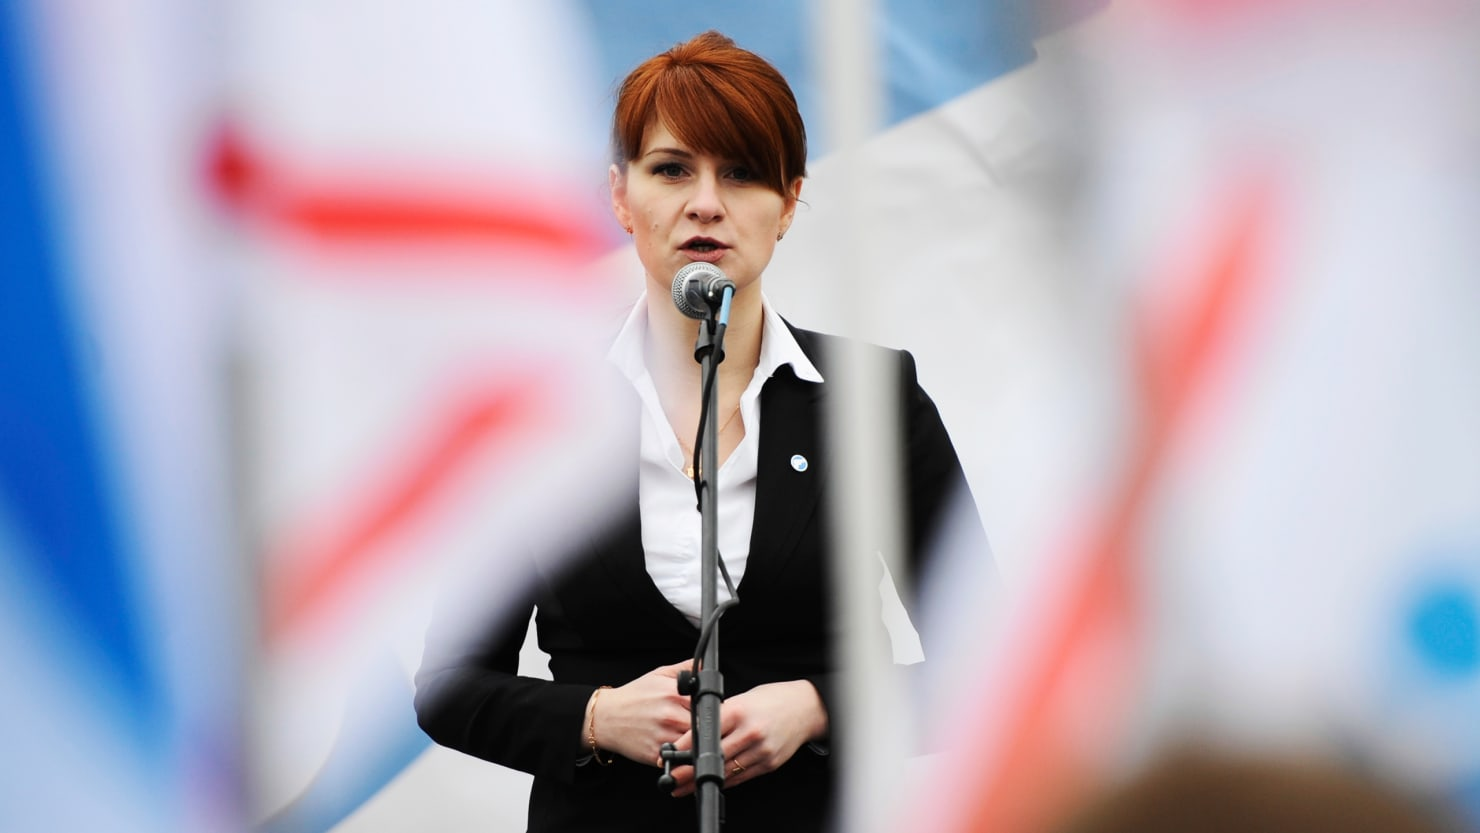 Maria Butina Pleads Guilty, Agrees to Cooperate With U.S.